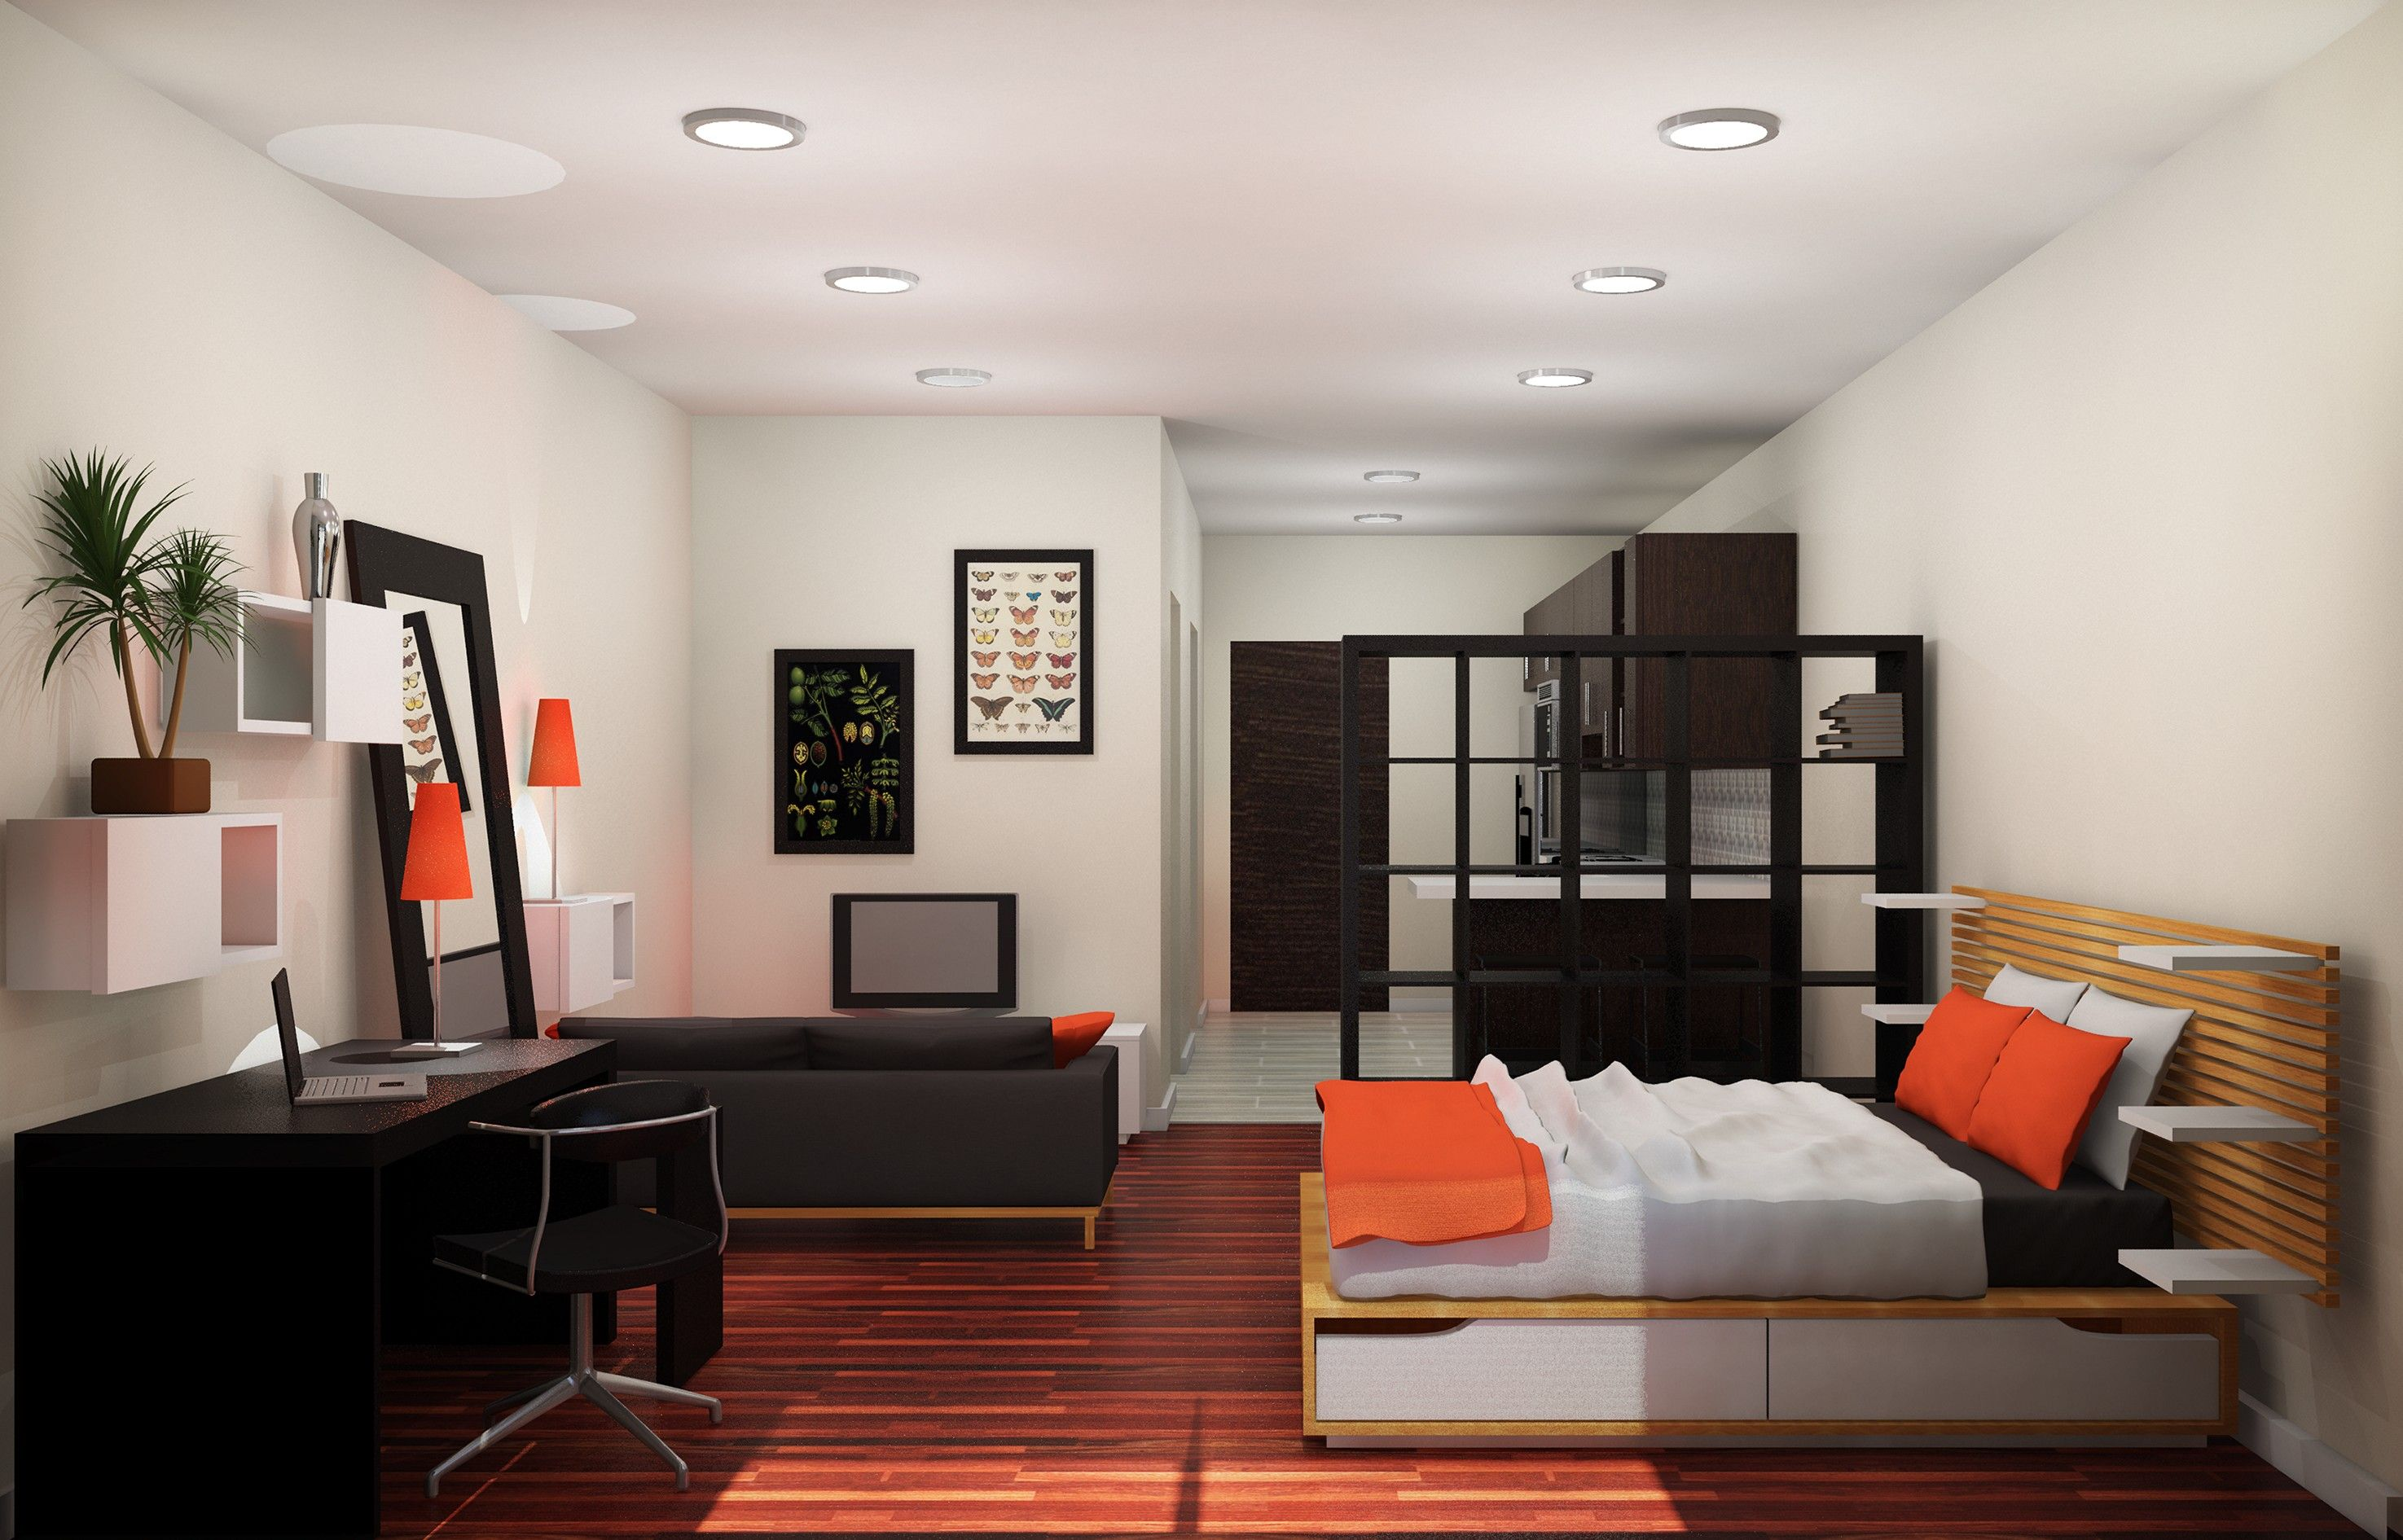 16 Apartment Decorating Ideas For A Beautiful Space 900sqftapartmentdecoratingideas Apartment Interior Apartment Design Apartment Decorating Living